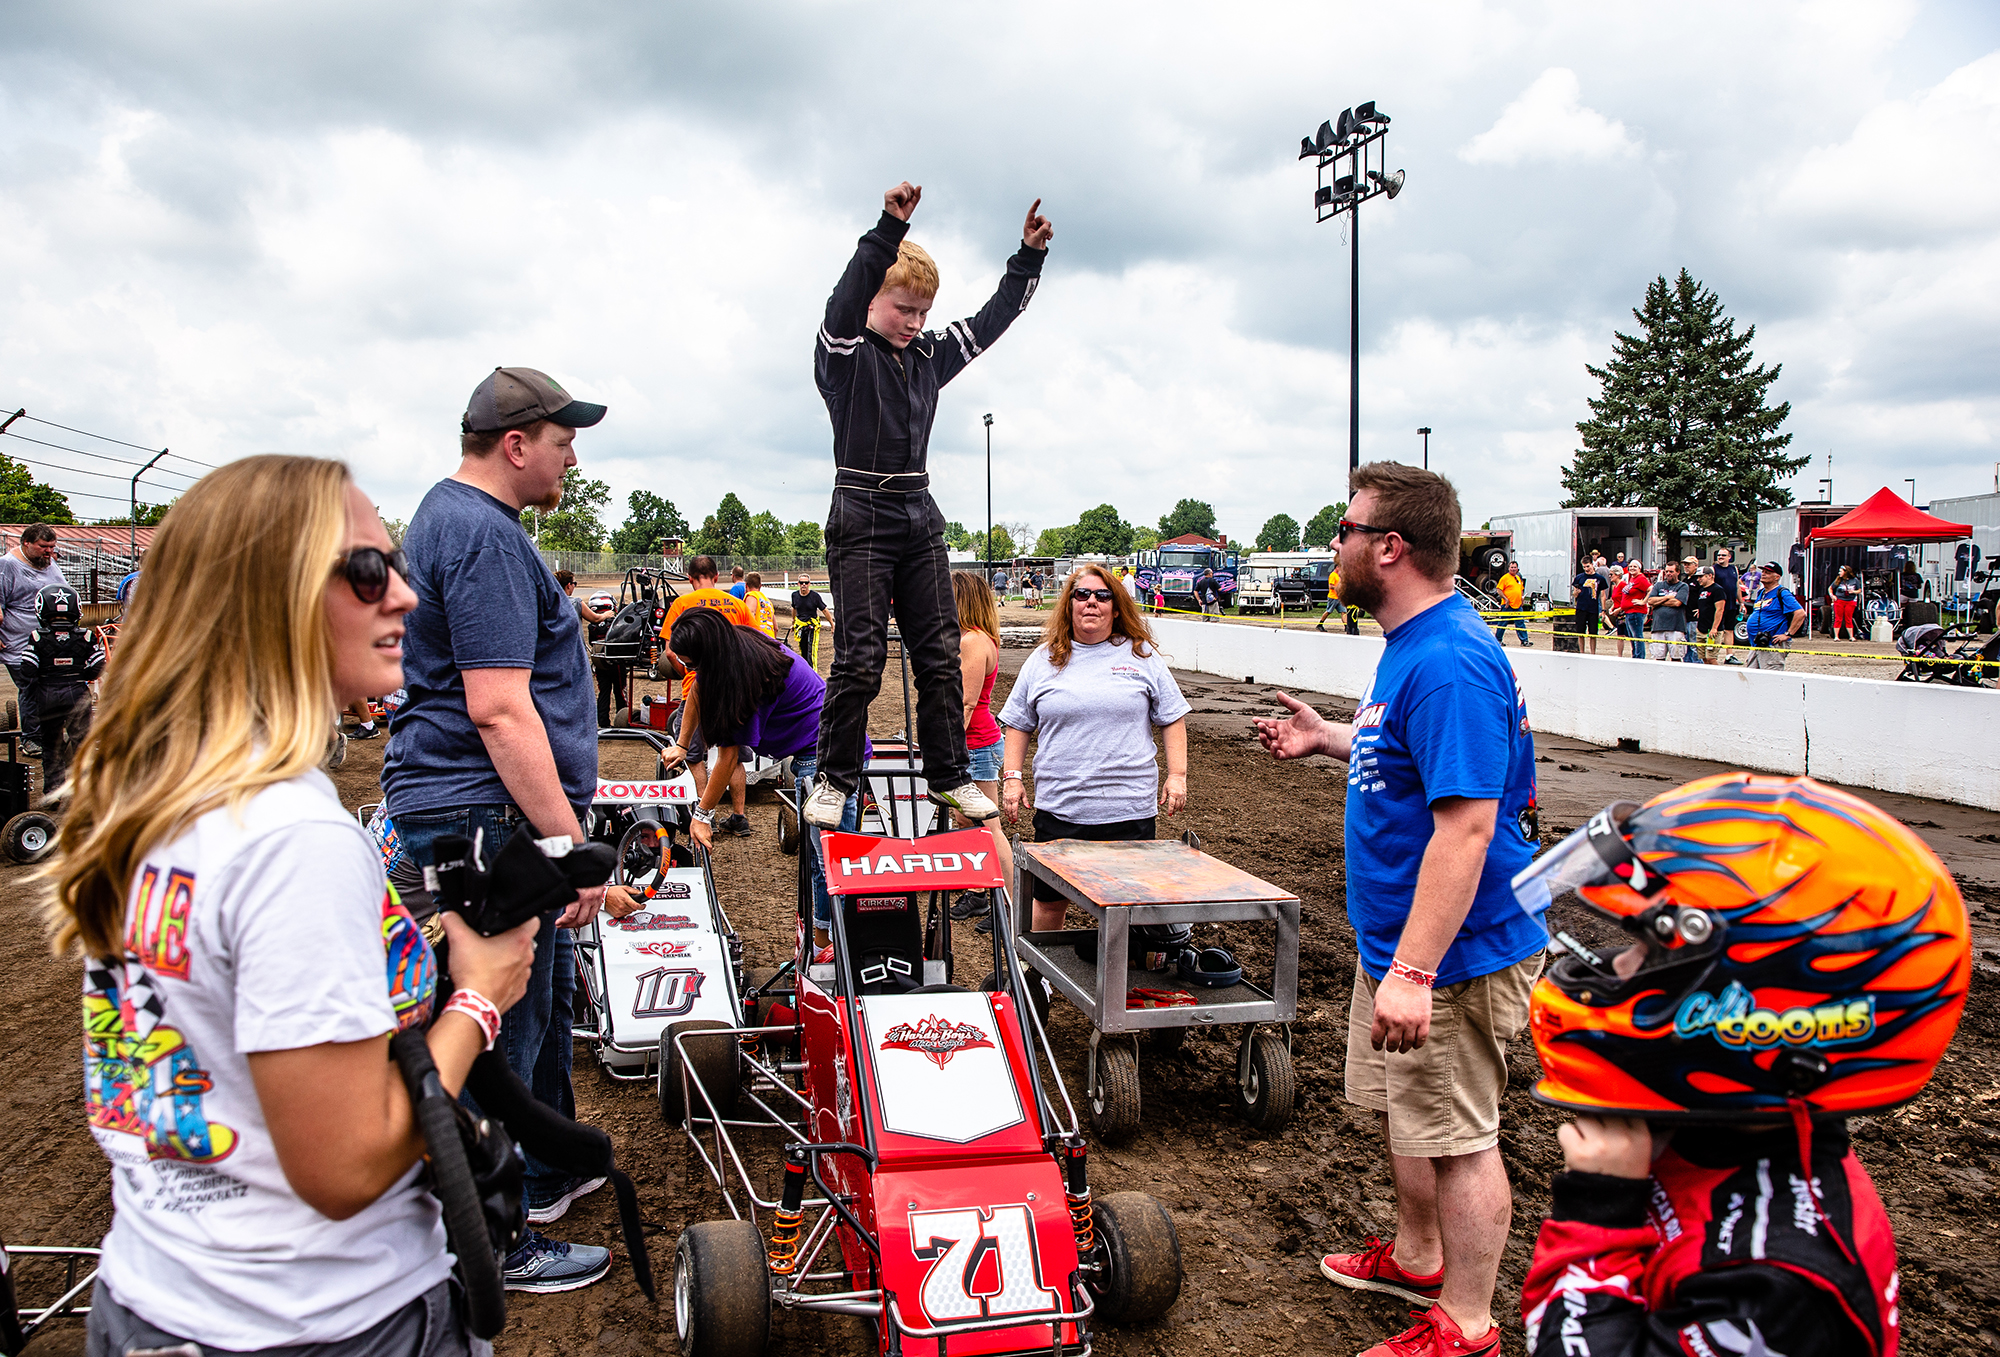 Gage Hardy, of Decatur, Ill., pretends to celebrate winning after he climbs out of his quarter midget after the group of young drivers took a parade lap around the track prior to the USAC Silver Crown Bettenhausen 100 on the Springfield Mile during the Illinois State Fair at the Illinois State Fairgrounds, Saturday, Aug. 18, 2018, in Springfield, Ill. [Justin L. Fowler/The State Journal-Register]